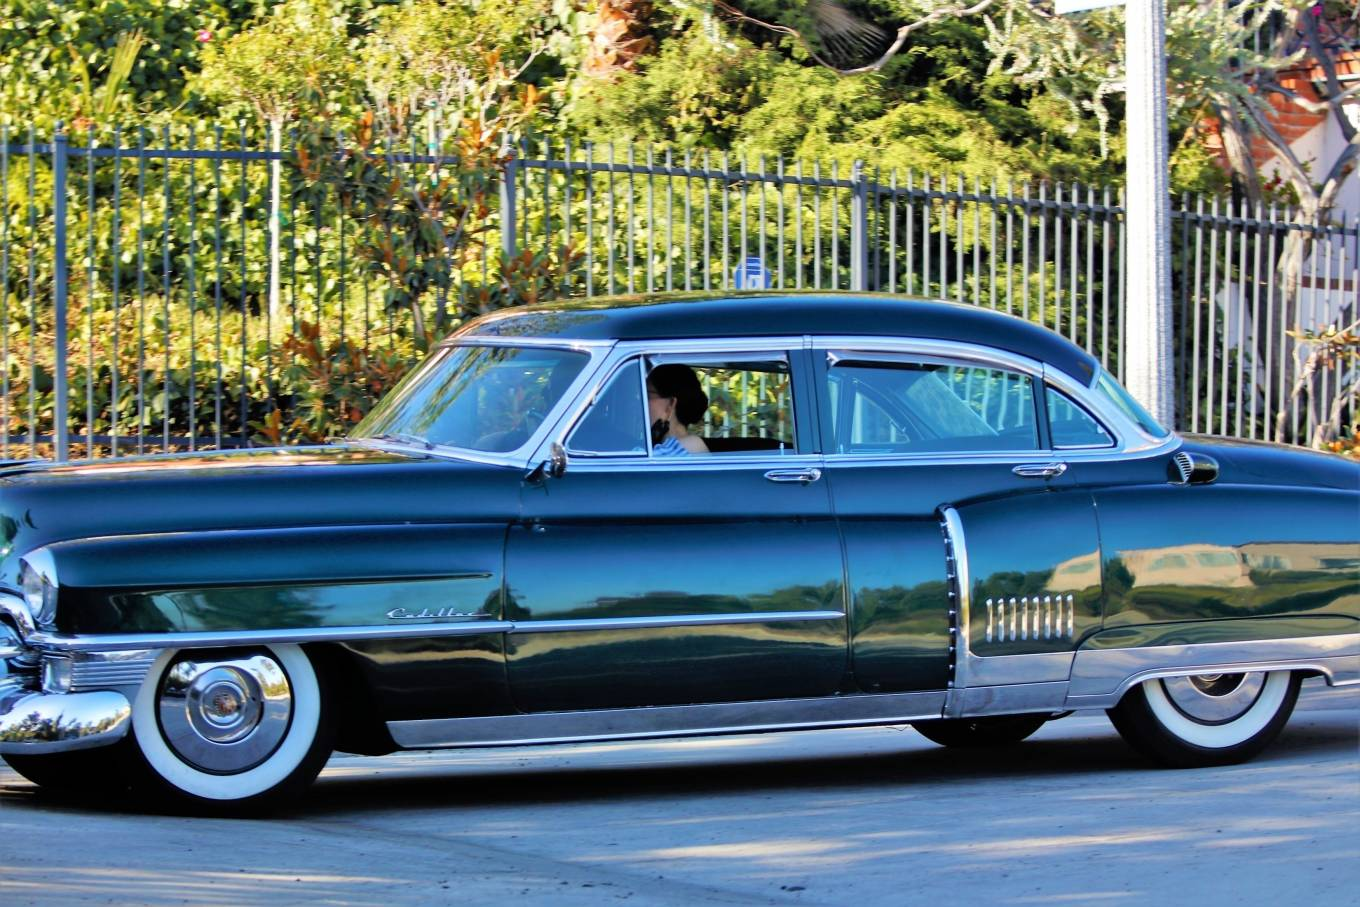 Dita Von Teese 2020 : Dita Von Teese – Takes her clean classic Chevy for a cruise in Los Angeles-08